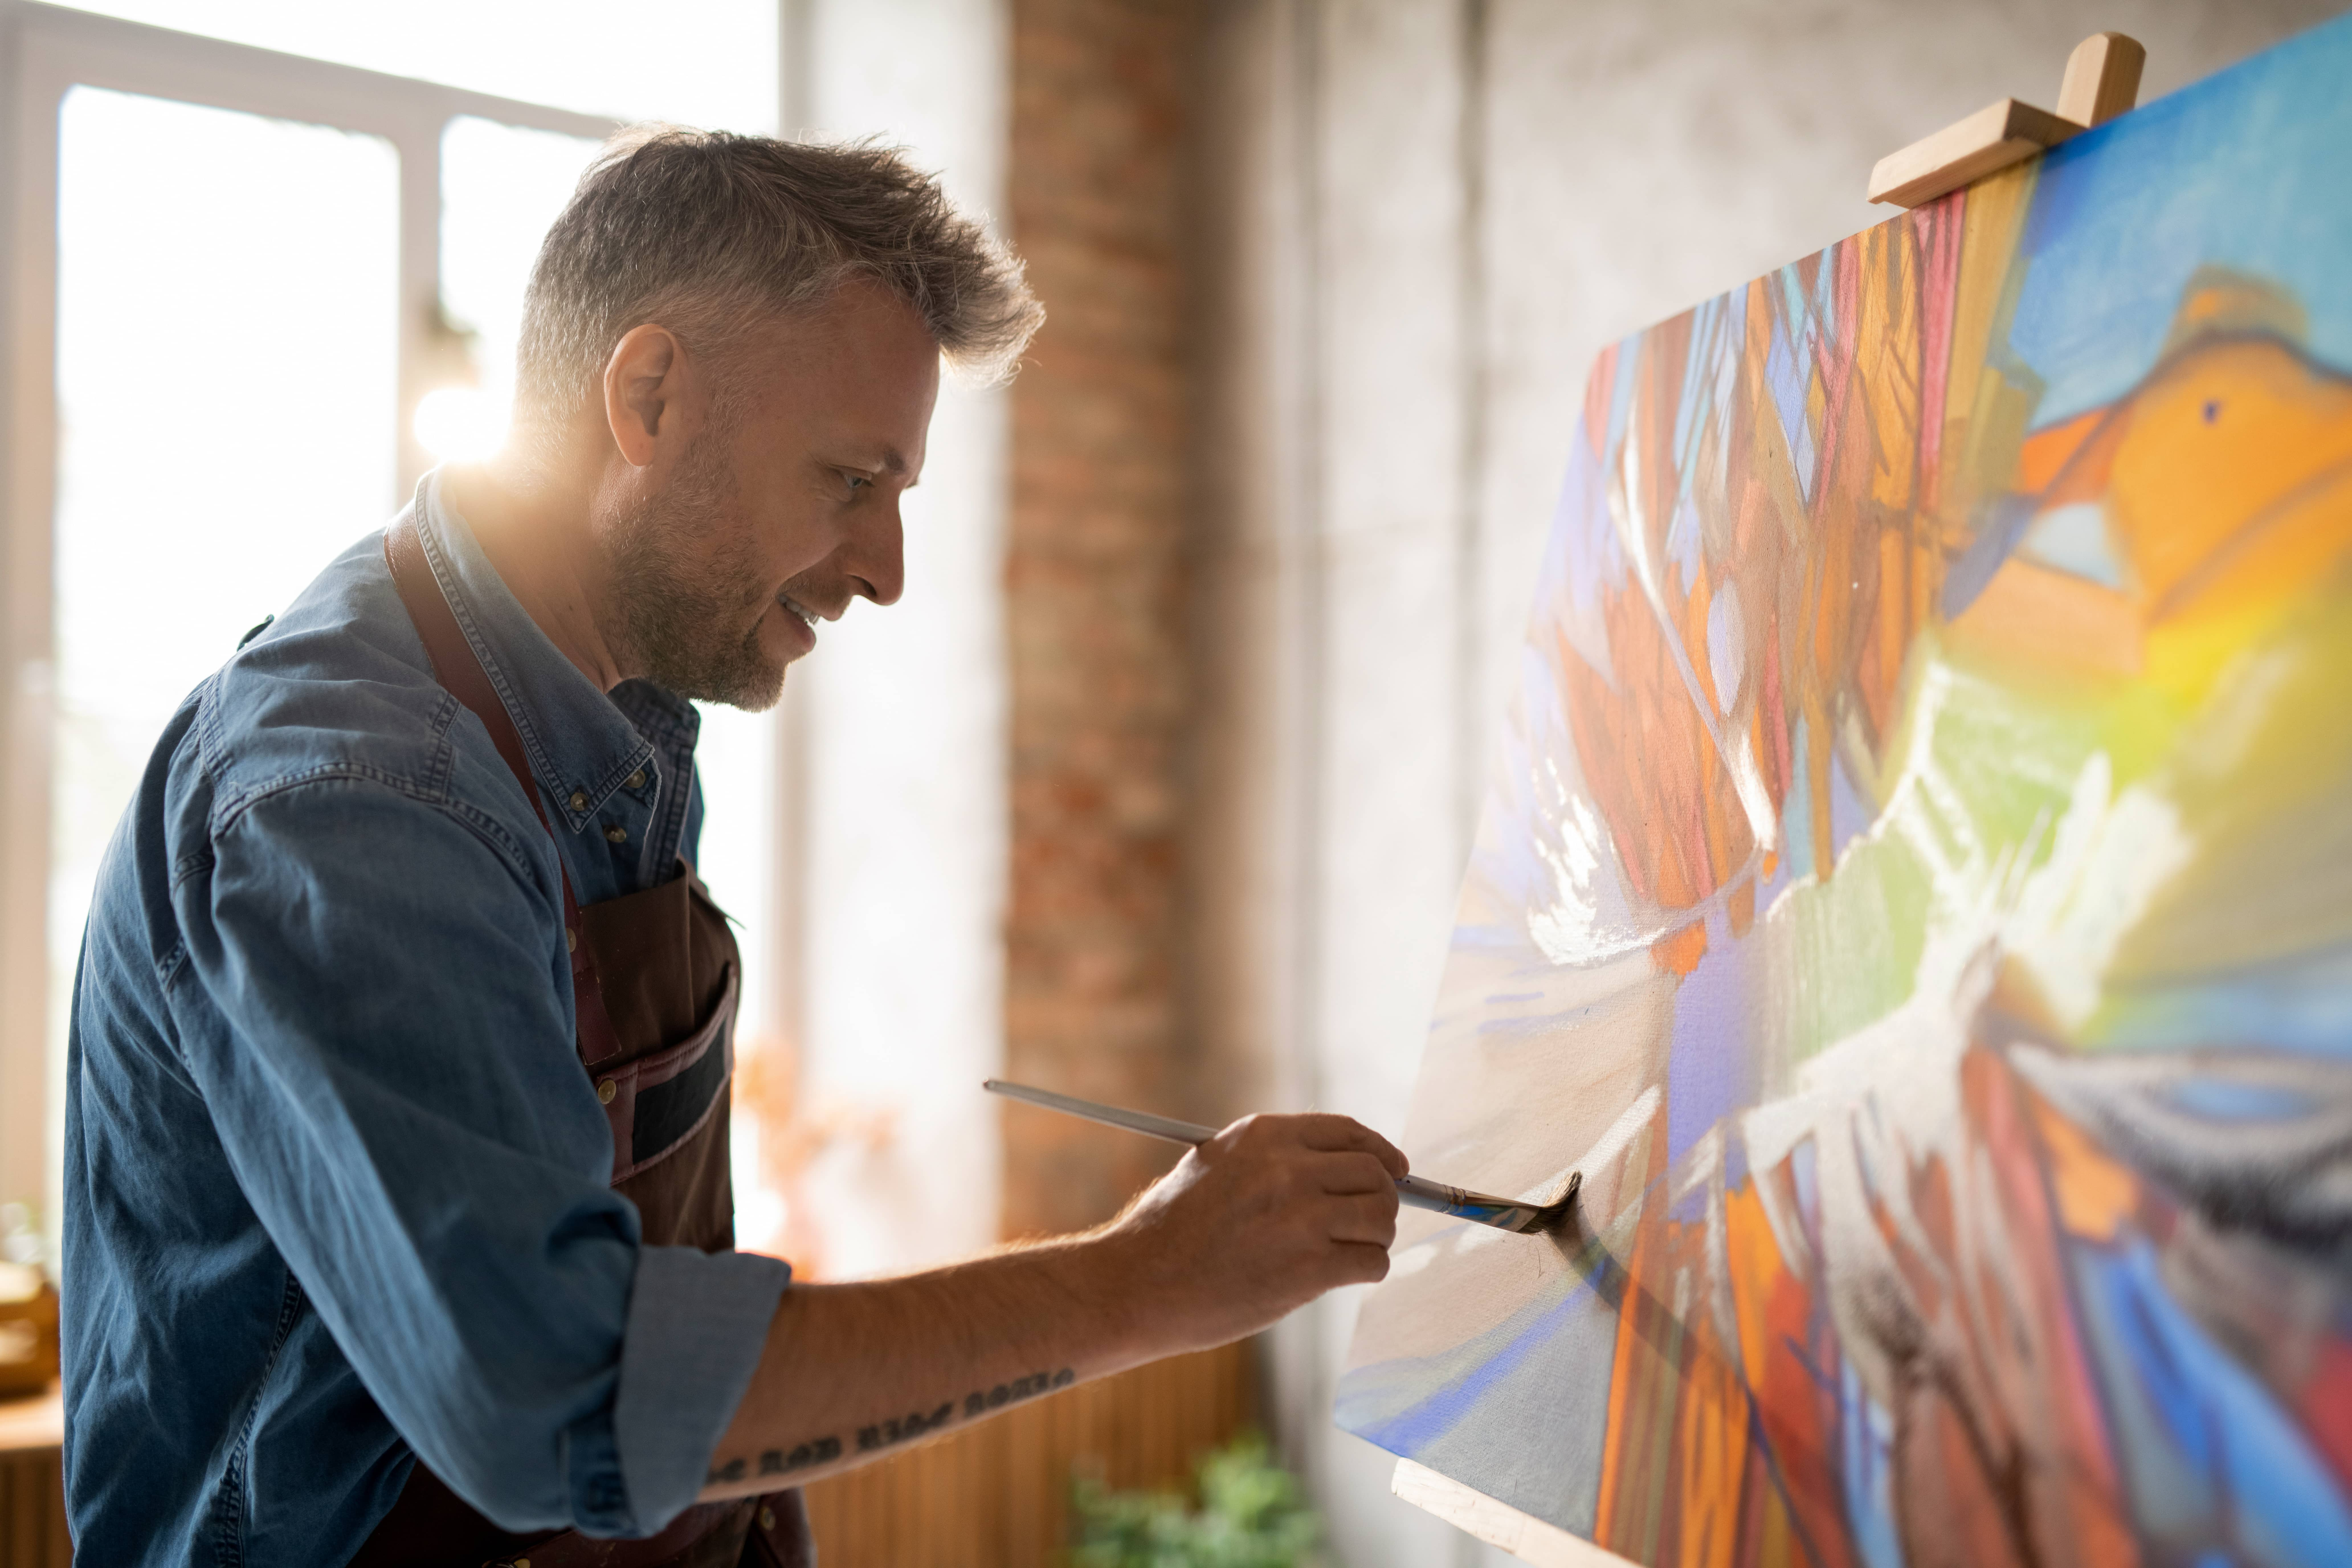 A man painting and spending slow time alone